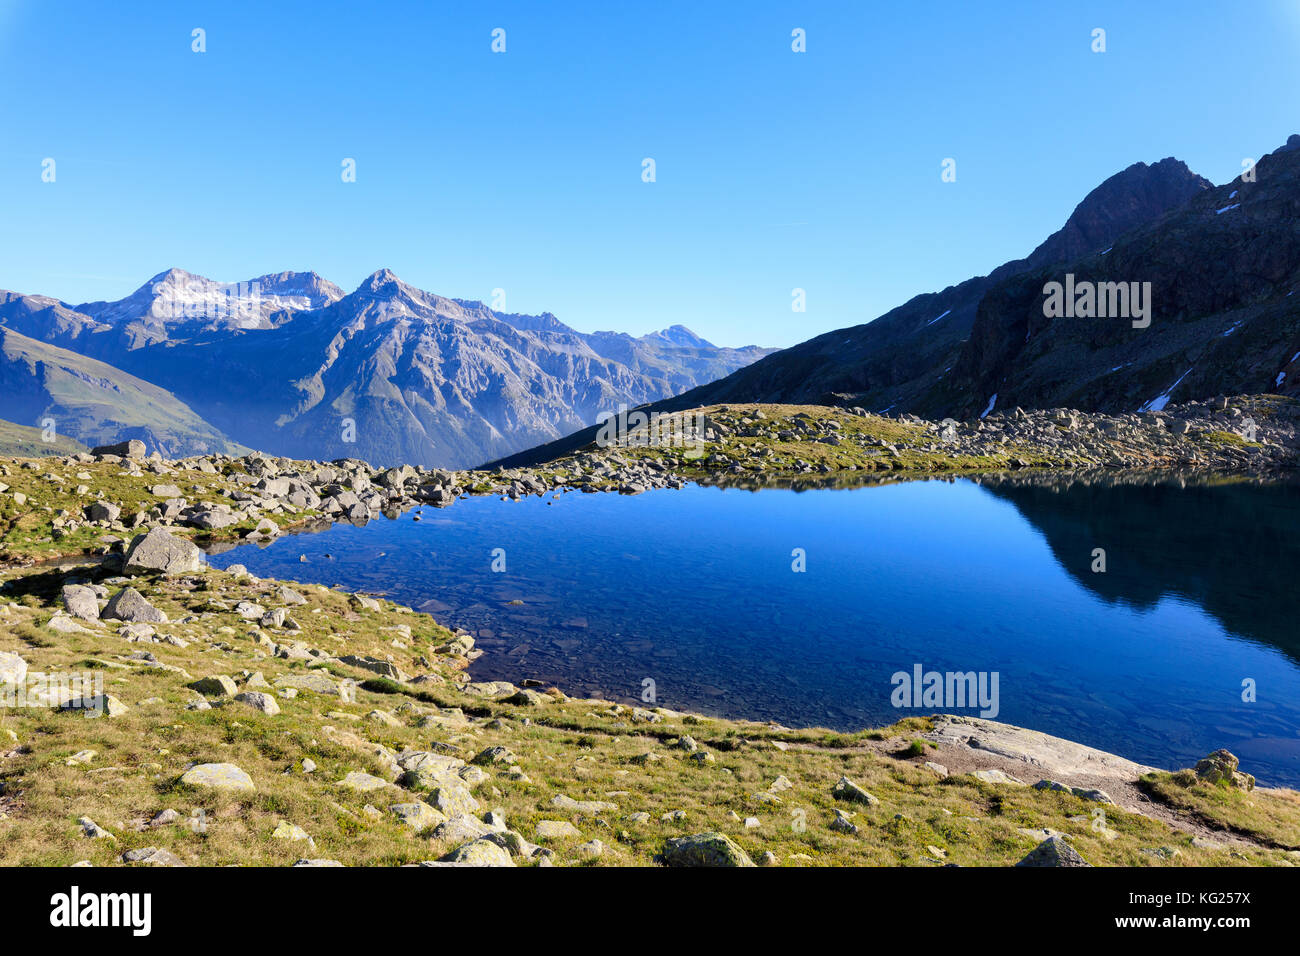 Lake Bergsee at sunrise, Chiavenna Valley, Spluga Valley, Spluga Pass, province of Sondrio, Valtellina, Lombardy, - Stock Image